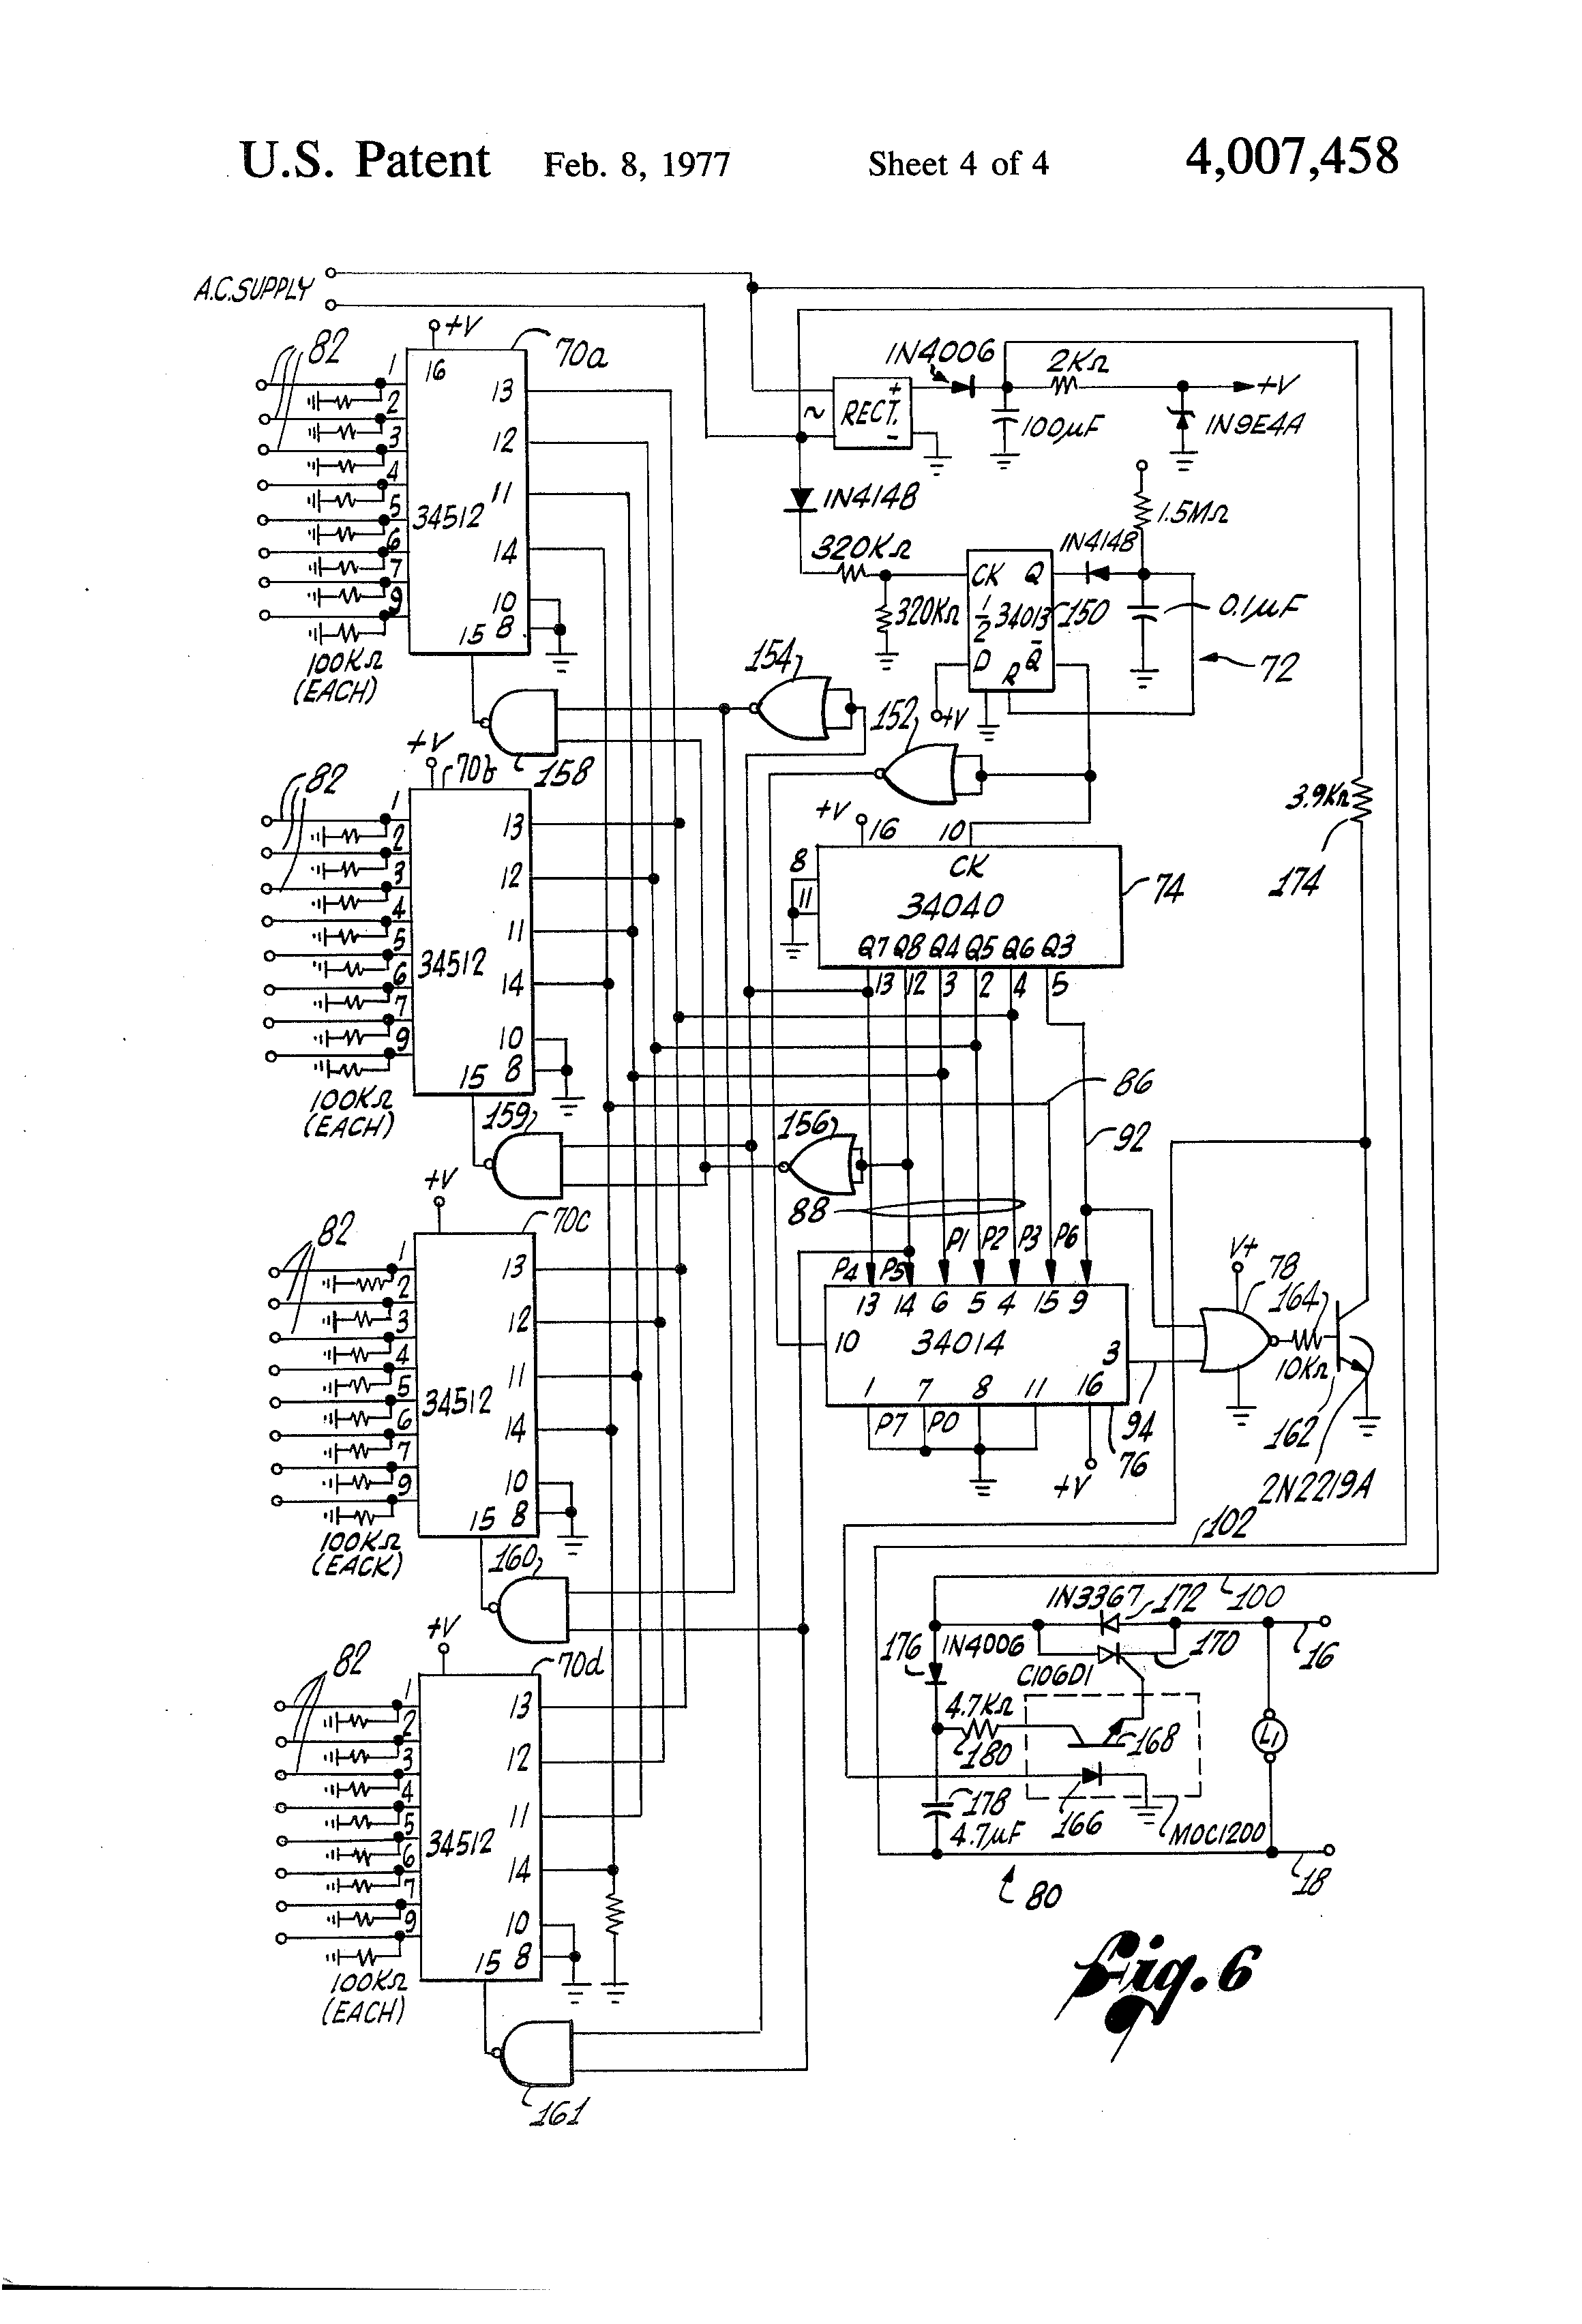 US4007458 4 toro irrigation wiring diagram wiring diagram and schematic design wiring diagram toro sprinkler control at crackthecode.co